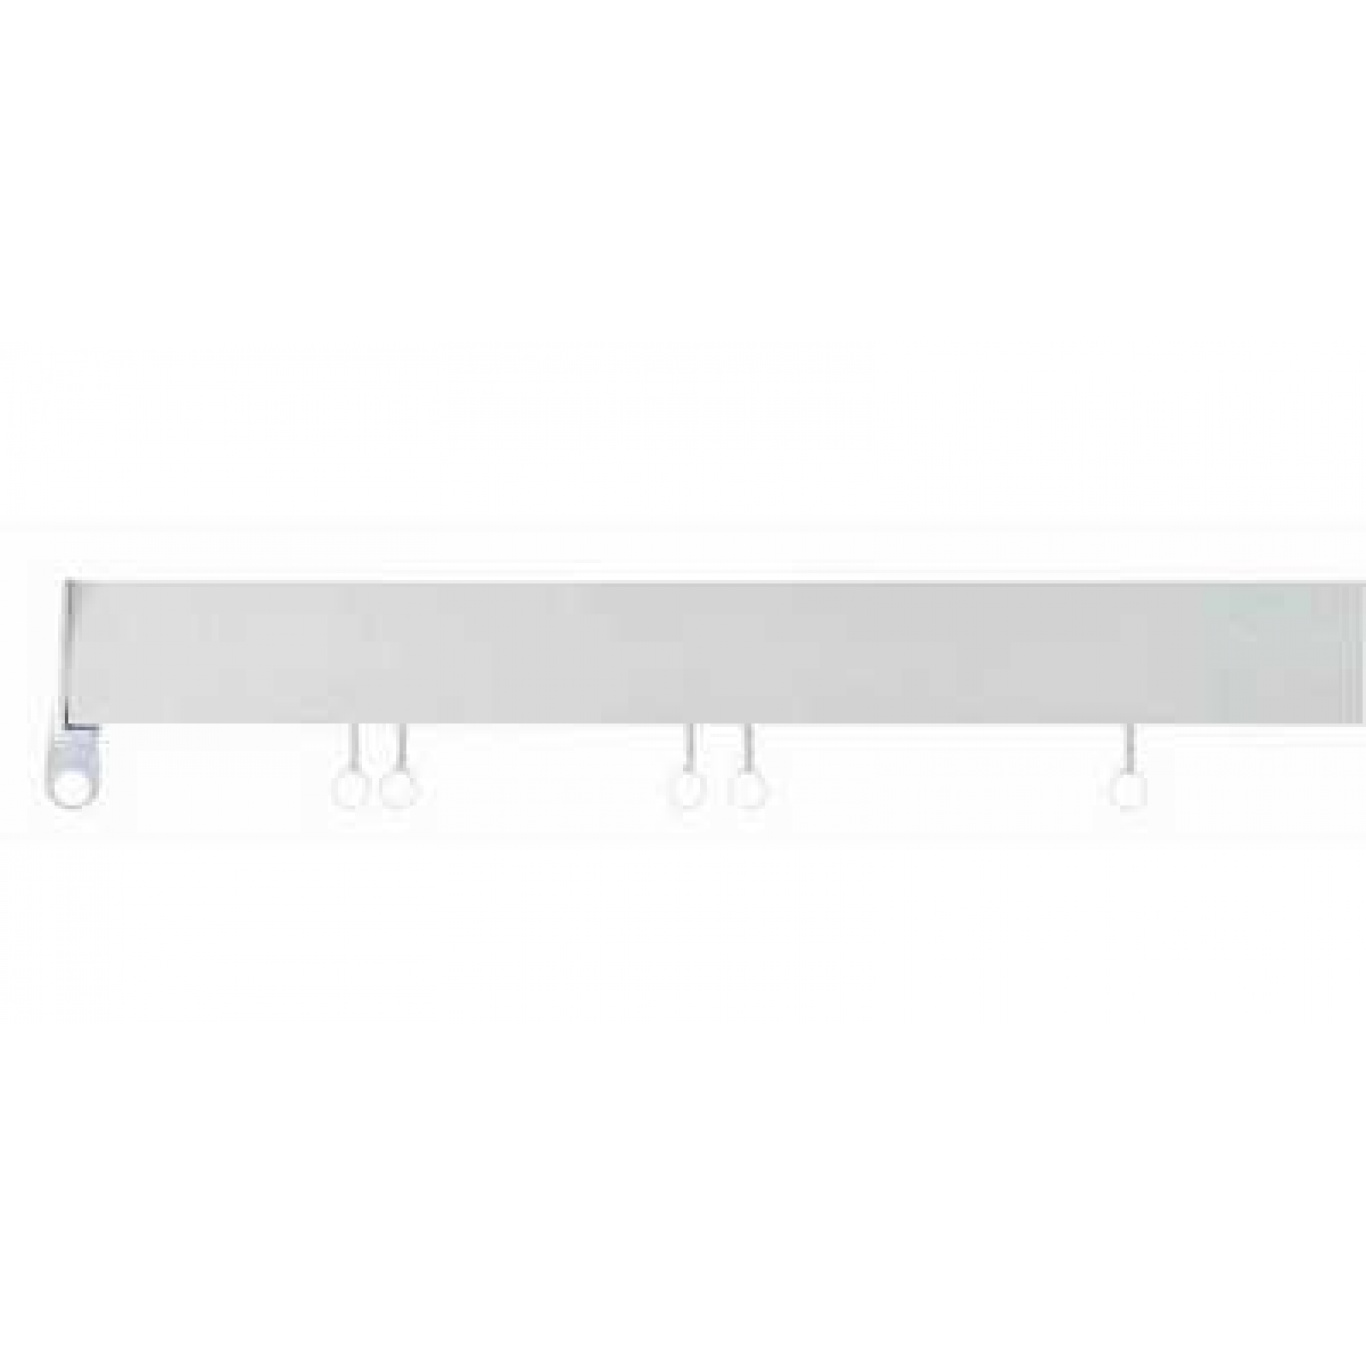 Image of Swish Deluxe White PVC Track 250cm